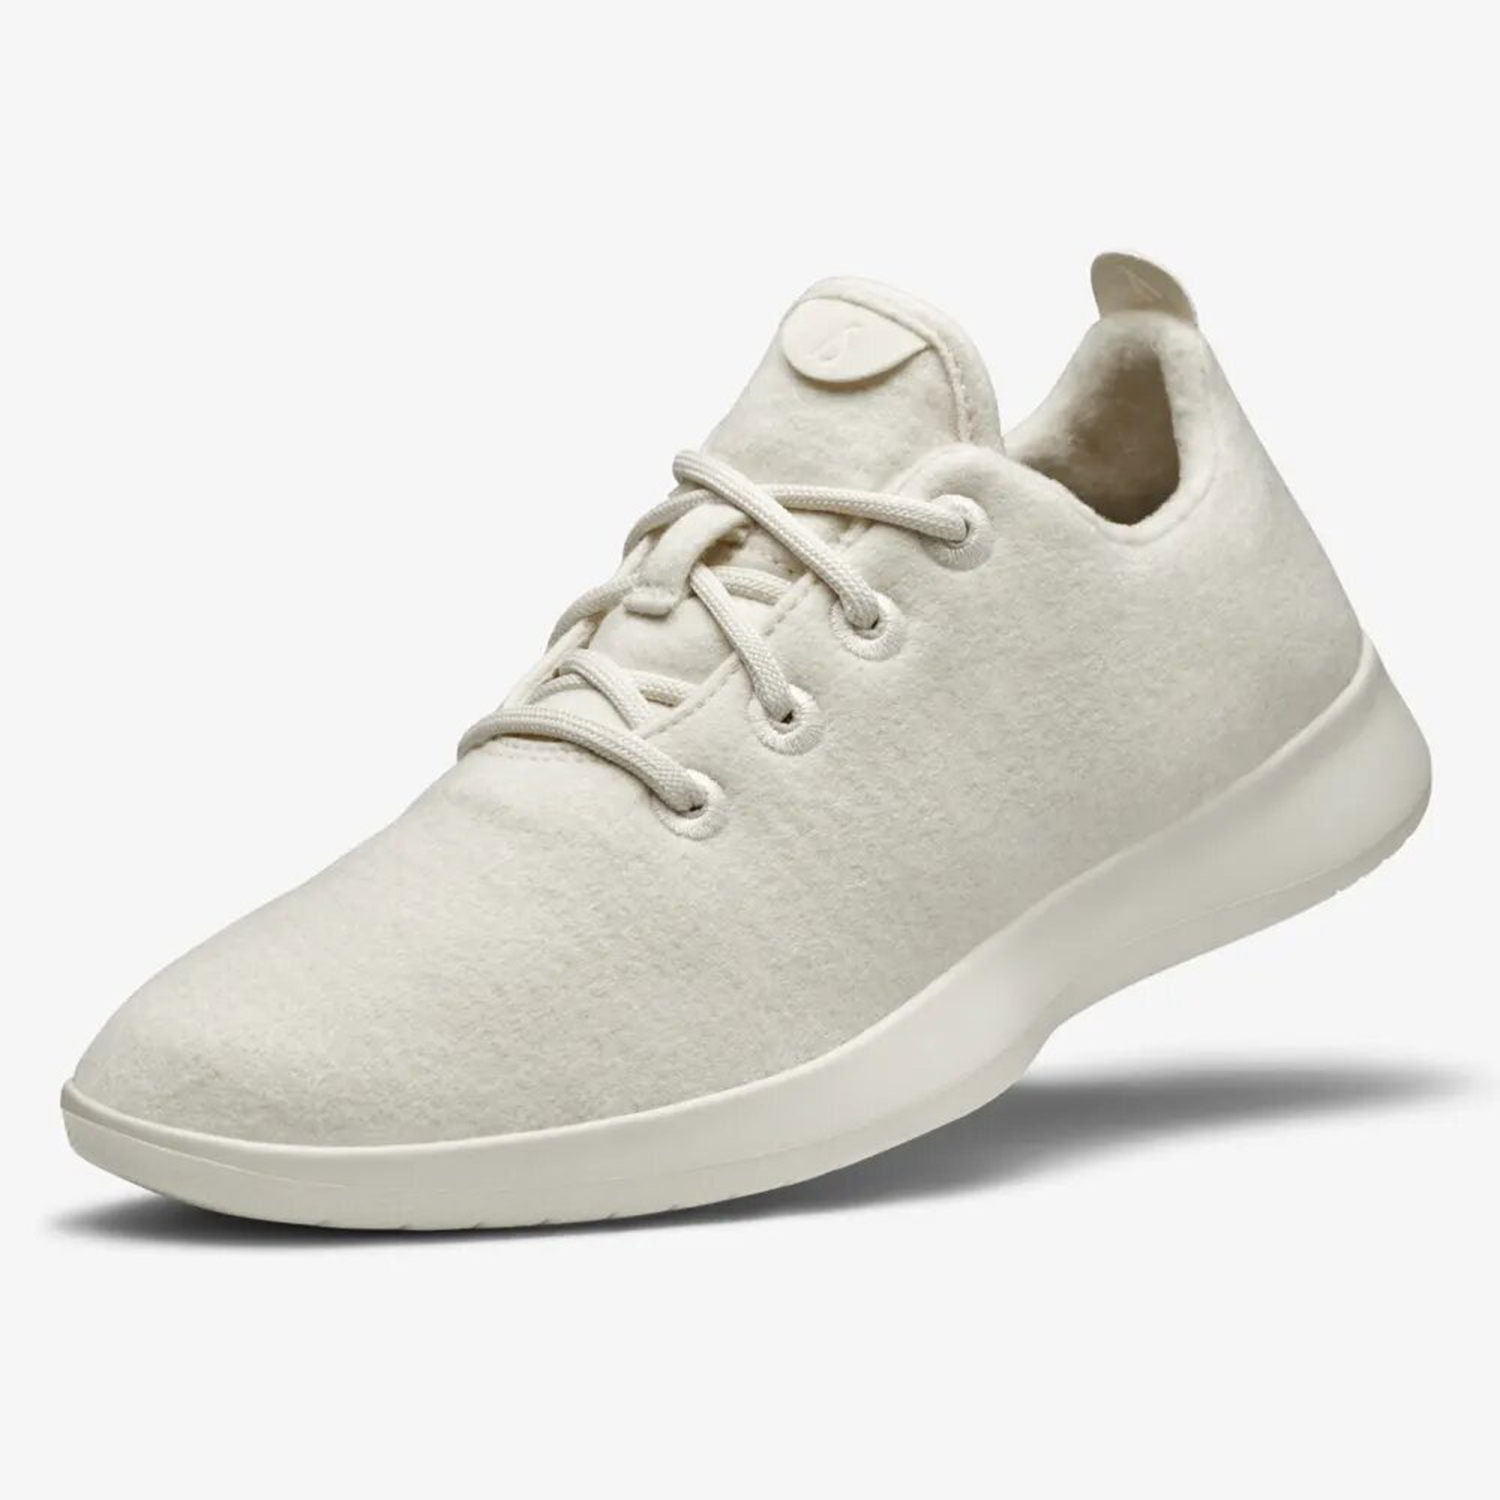 Wool Runners Natural White Cream Sole